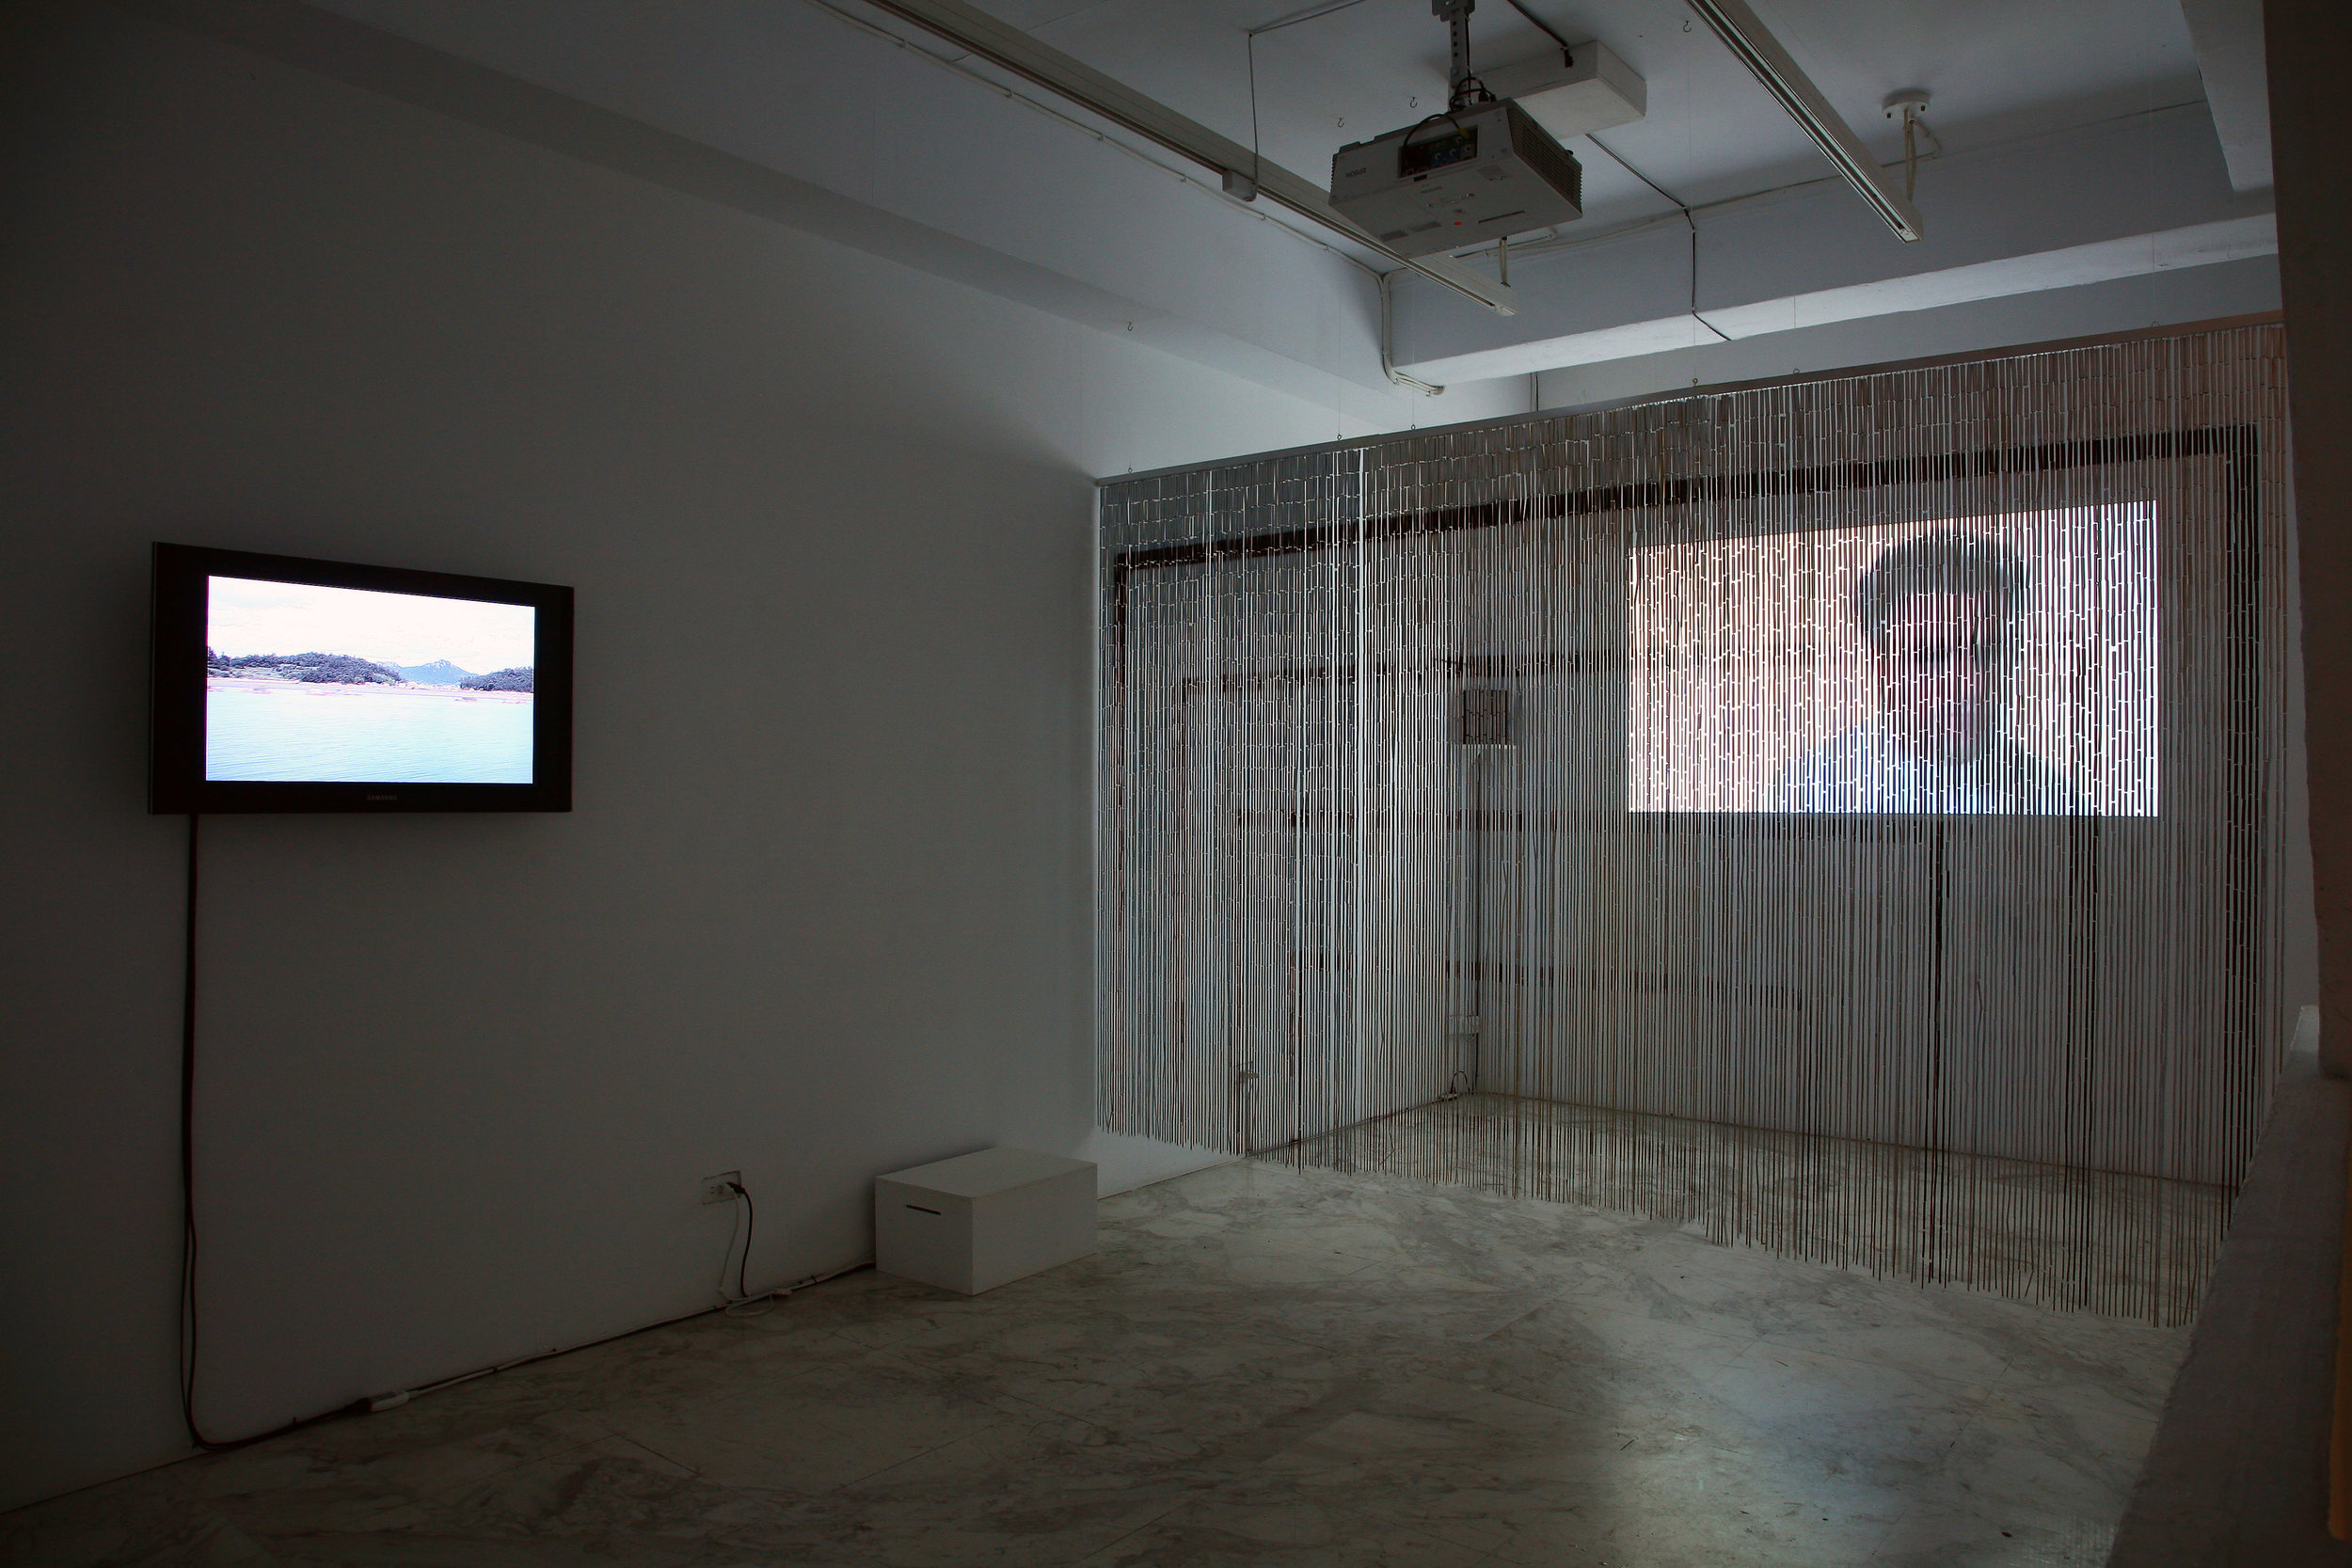 (Left) Wu Shang Lin's video installation 'Space of Remembrance', 2008 ; (Right) Mark Aerial Waller's Video installation 'The Flipside of Darkness', 2008